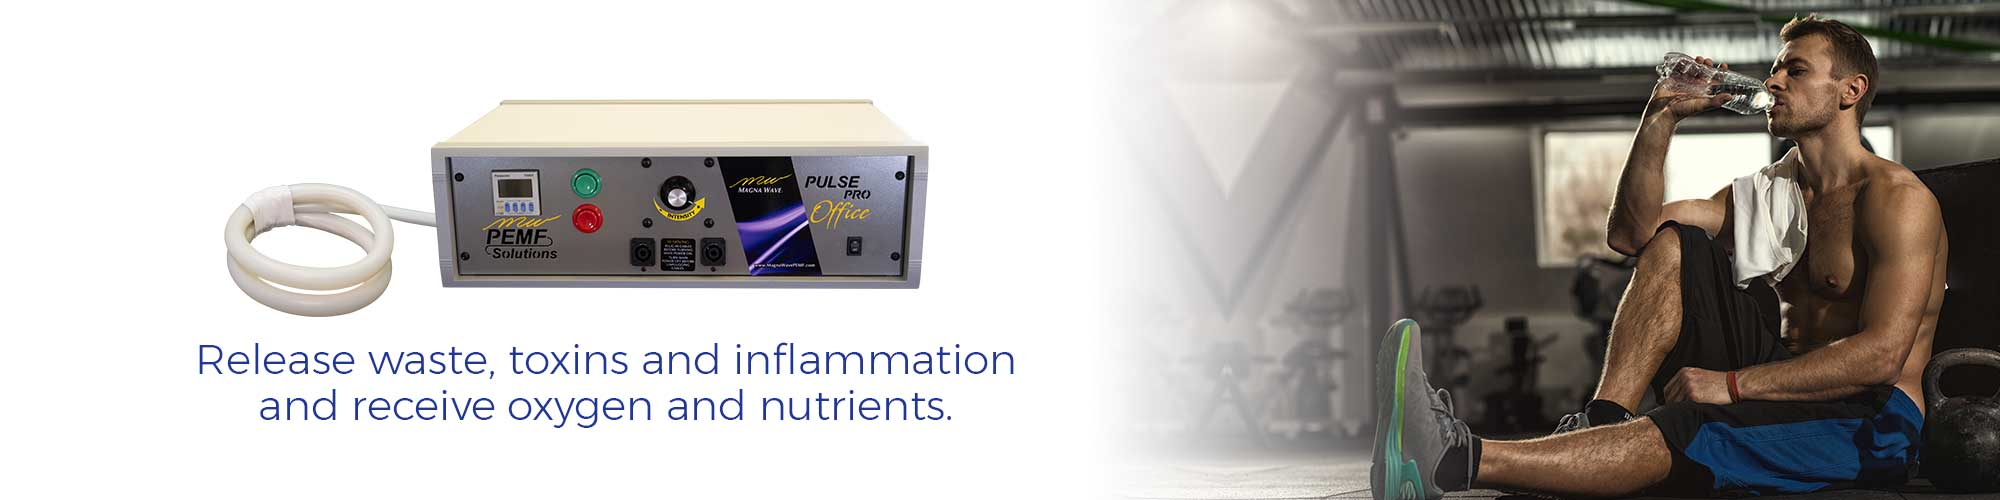 Release waste, toxins and inflammation and receive oxygen and nutrients.